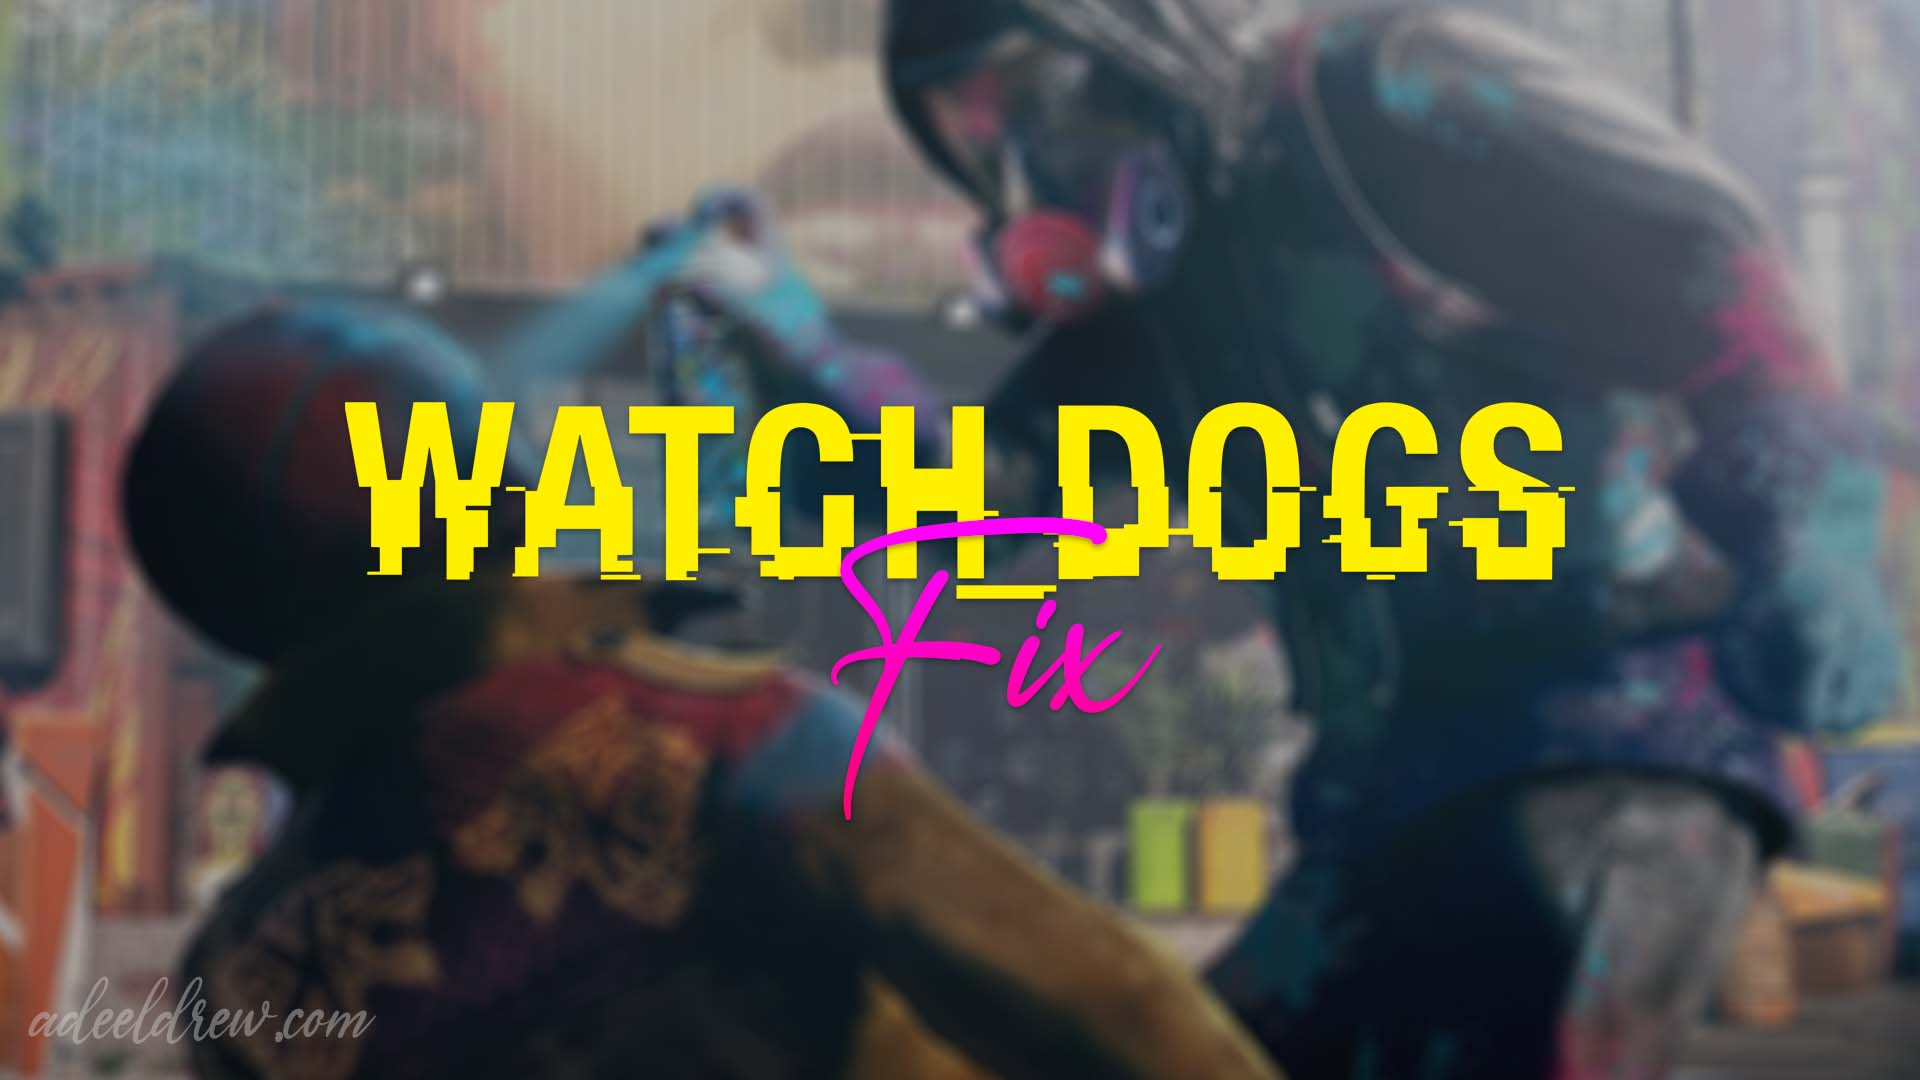 """FIX WATCH DOG GAME'S 3 ERRORS IN 1 MINUTE how to fix watch dogs black screen fixed how to fix watch dogs fix,fix watch dogs watch dogs fix watch dogs not starting how to fix watch dogs error how to fix watch dogs  update error how to fix watch dogs uplay error how to fix watch dogs play error how to fix watch dogs launch error watch dogs gameplay how to fix watch dogs error 'Watch_Dogs"""" setup is damaged It is recommended to reinstall the game from the original release by z10yded how to fix watch dogs error Watch_Dogs.exe System Error The code execution cannot proceed because XINPUT1.3.dll was not found. Reinstalling the program may fix this problem. how to fix watch dogs error Watch_Dogs.exe System Error The code execution cannot proceed because D3DCOMPILER_43.dll was not found. Reinstalling the program may fix this problem. how to fix watch dogs game adeeldrew Error 'Watch_Dogs"""" setup is damaged It is recommended to reinstall the game from the original release by z10yded  Error Watch_Dogs.exe System Error The code execution cannot proceed because XINPUT1.3.dll was not found. Reinstalling the program may fix this problem.  Error Watch_Dogs.exe System Error The code execution cannot proceed because D3DCOMPILER_43.dll was not found. Reinstalling the program may fix this problem."""